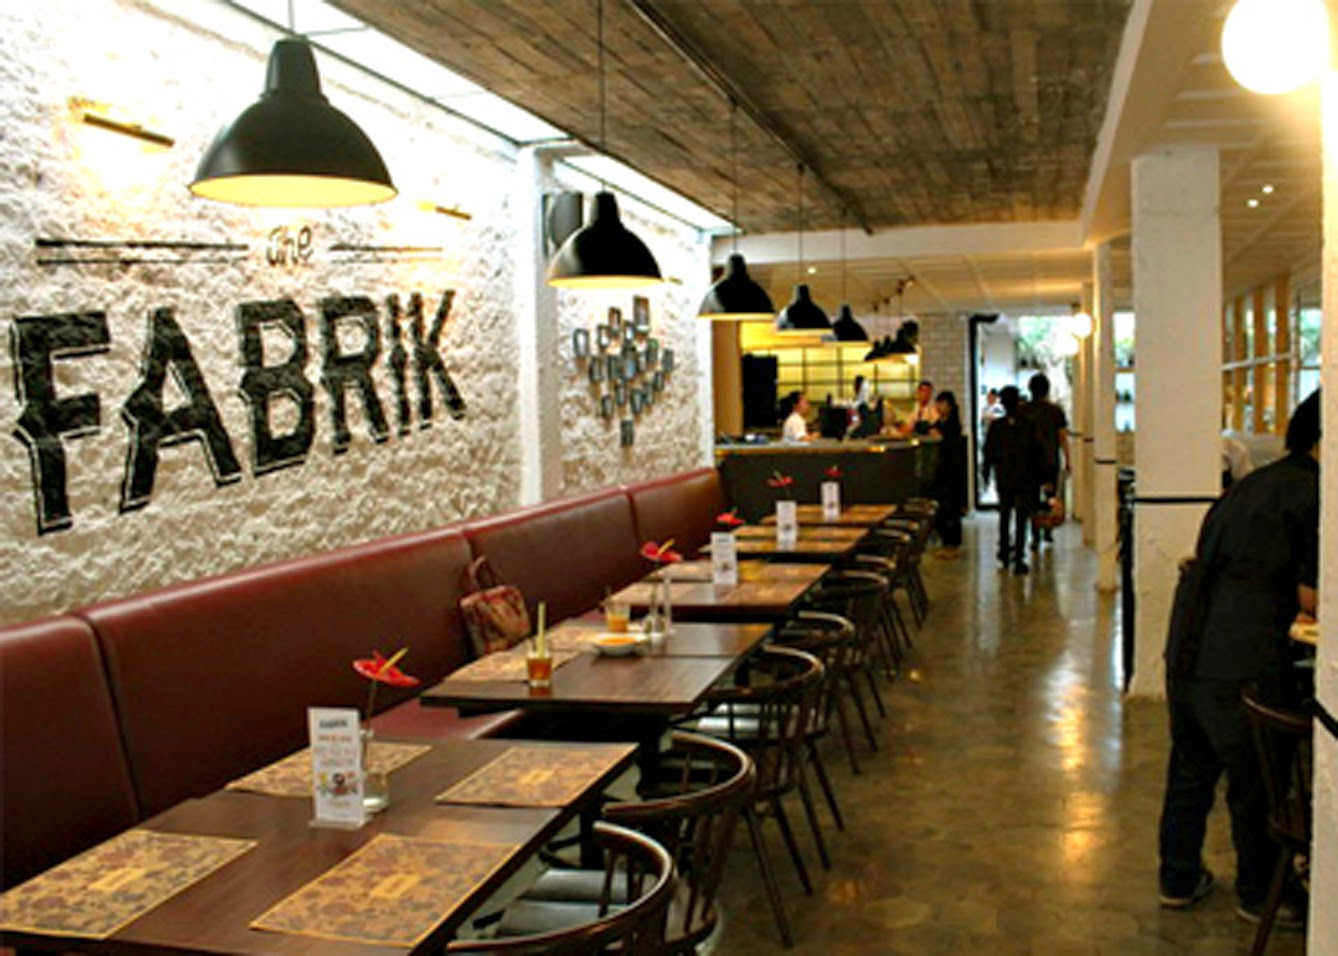 The Fabrik Eatery Cafe